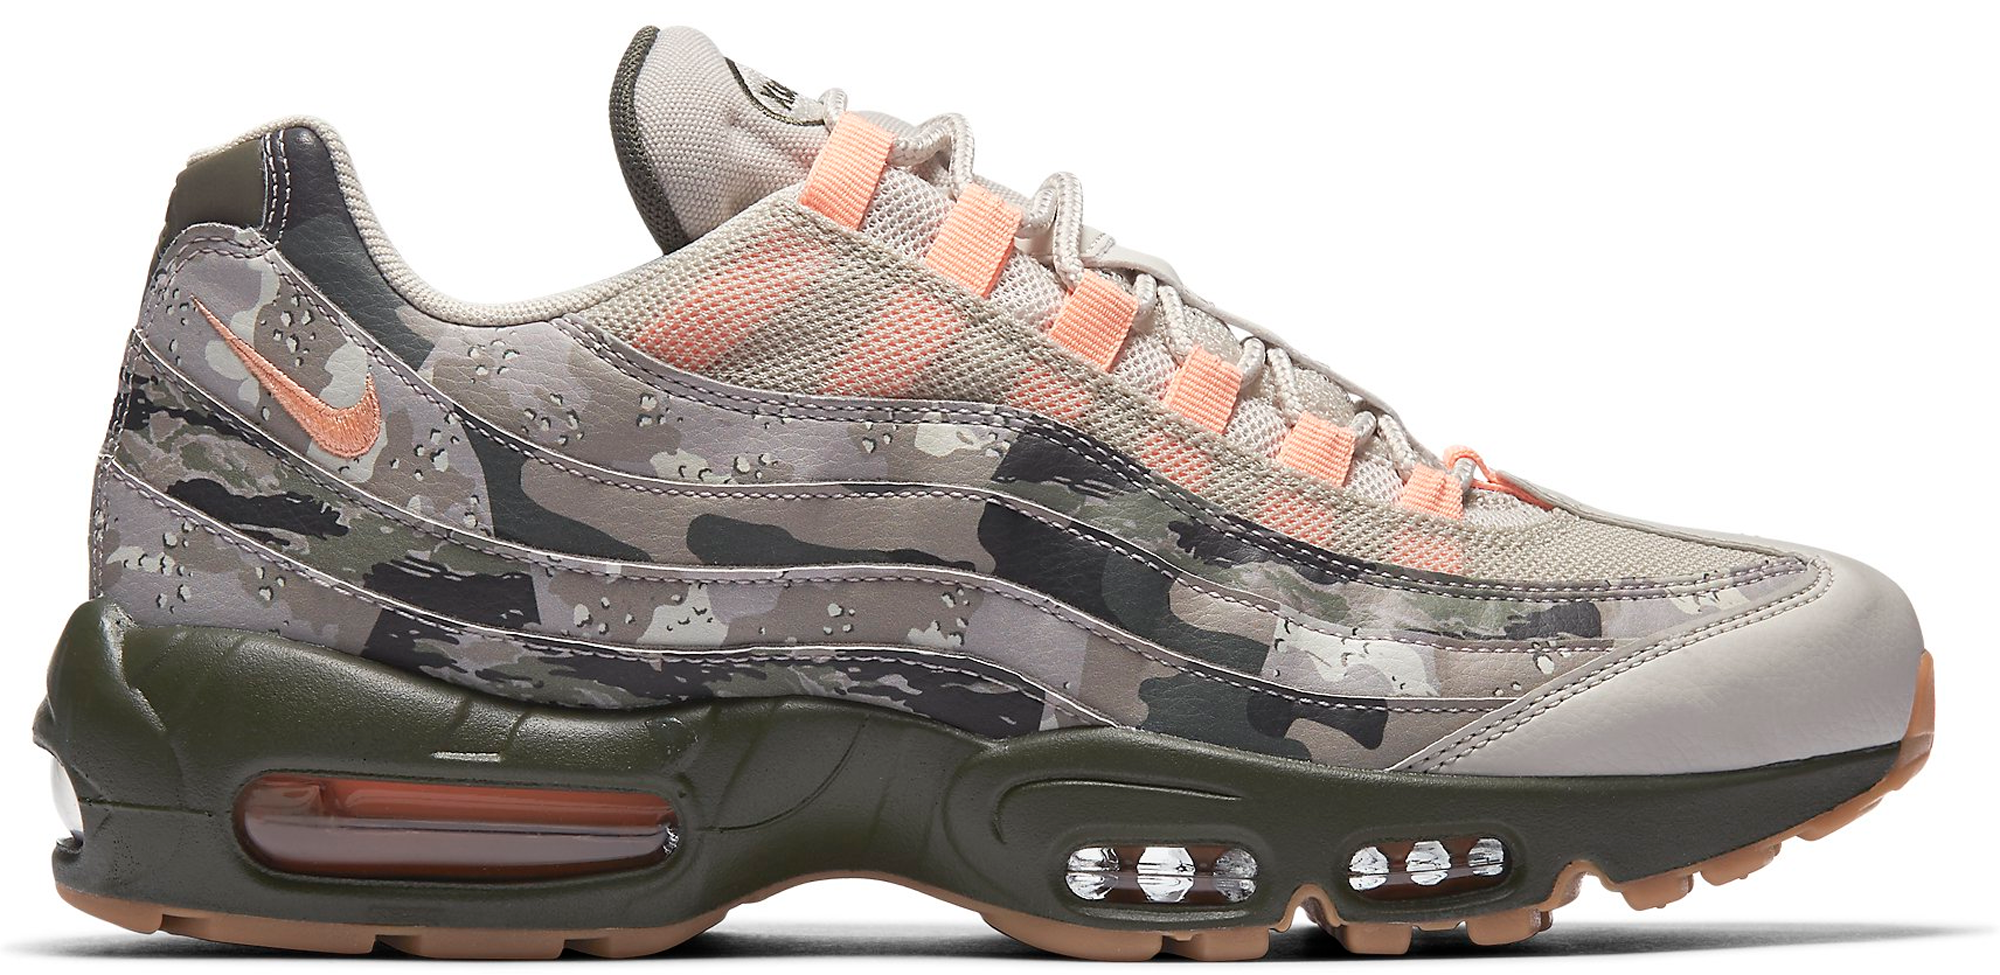 online retailer a3d4c 607c6 coupon code for buy nike air max 95 shoes deadstock sneakers 57300 92440